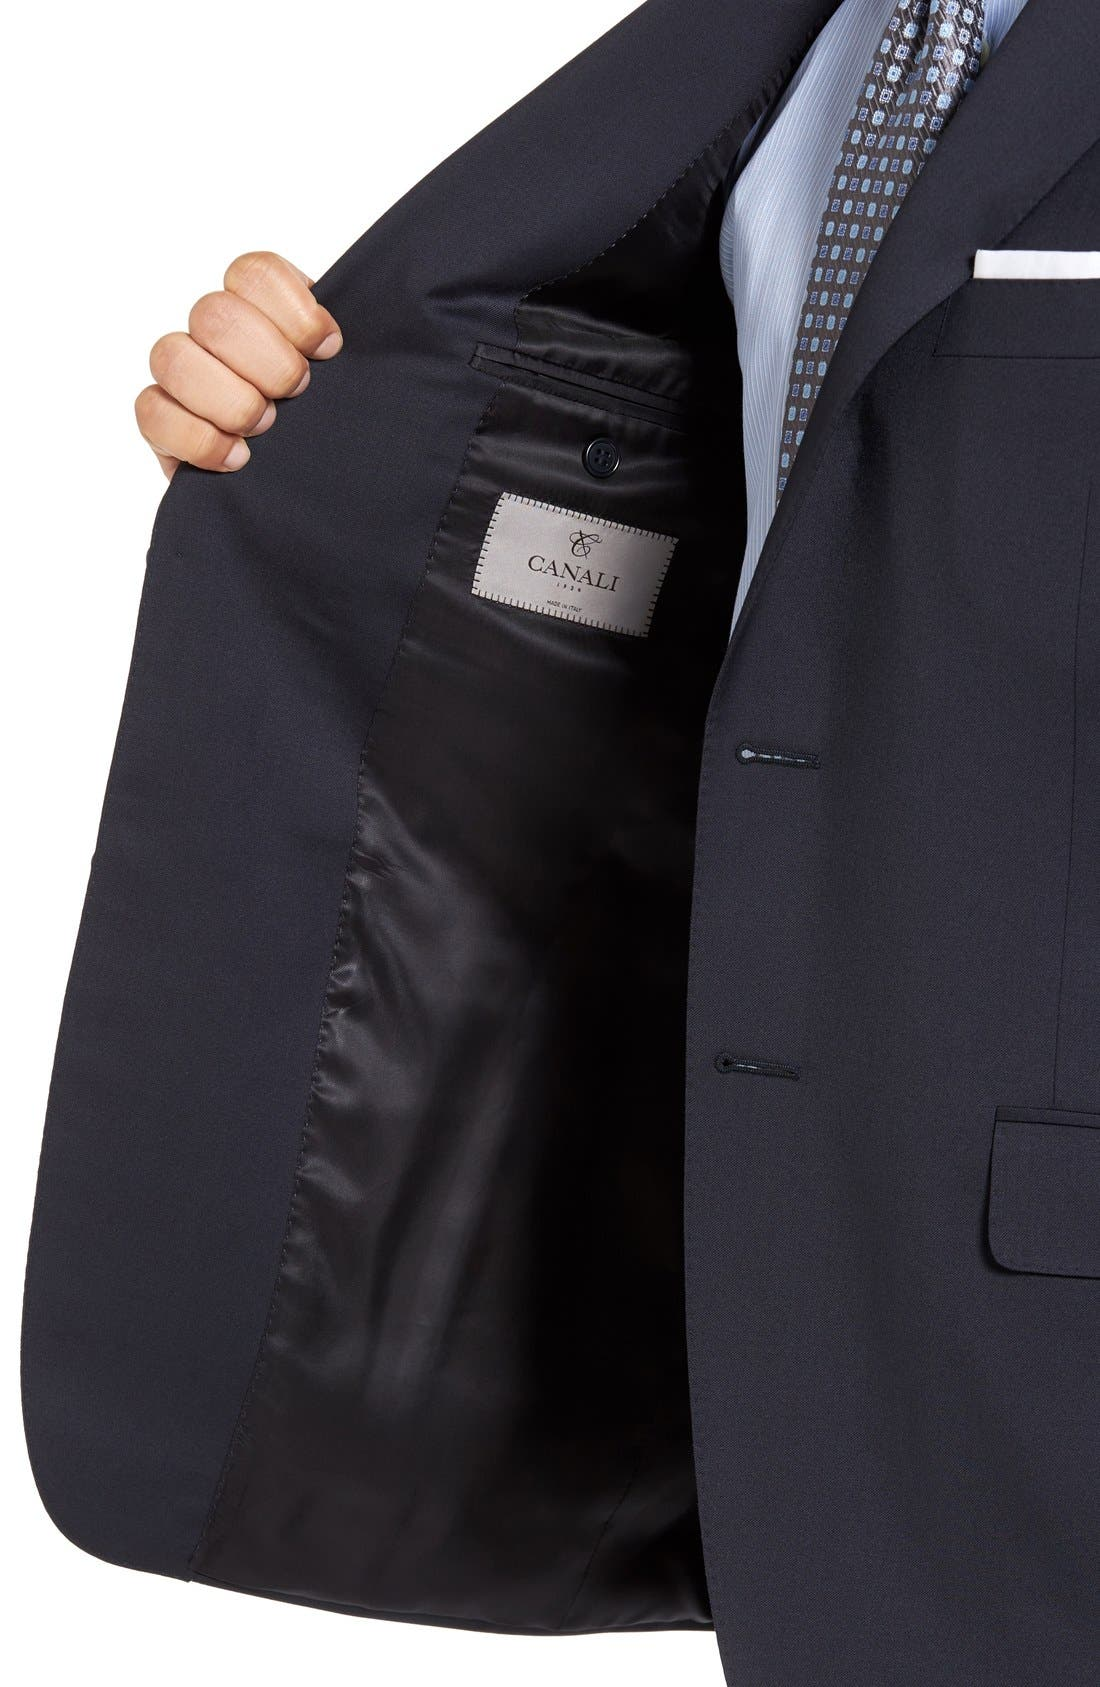 CANALI, Classic Fit Solid Wool Suit, Alternate thumbnail 6, color, NAVY